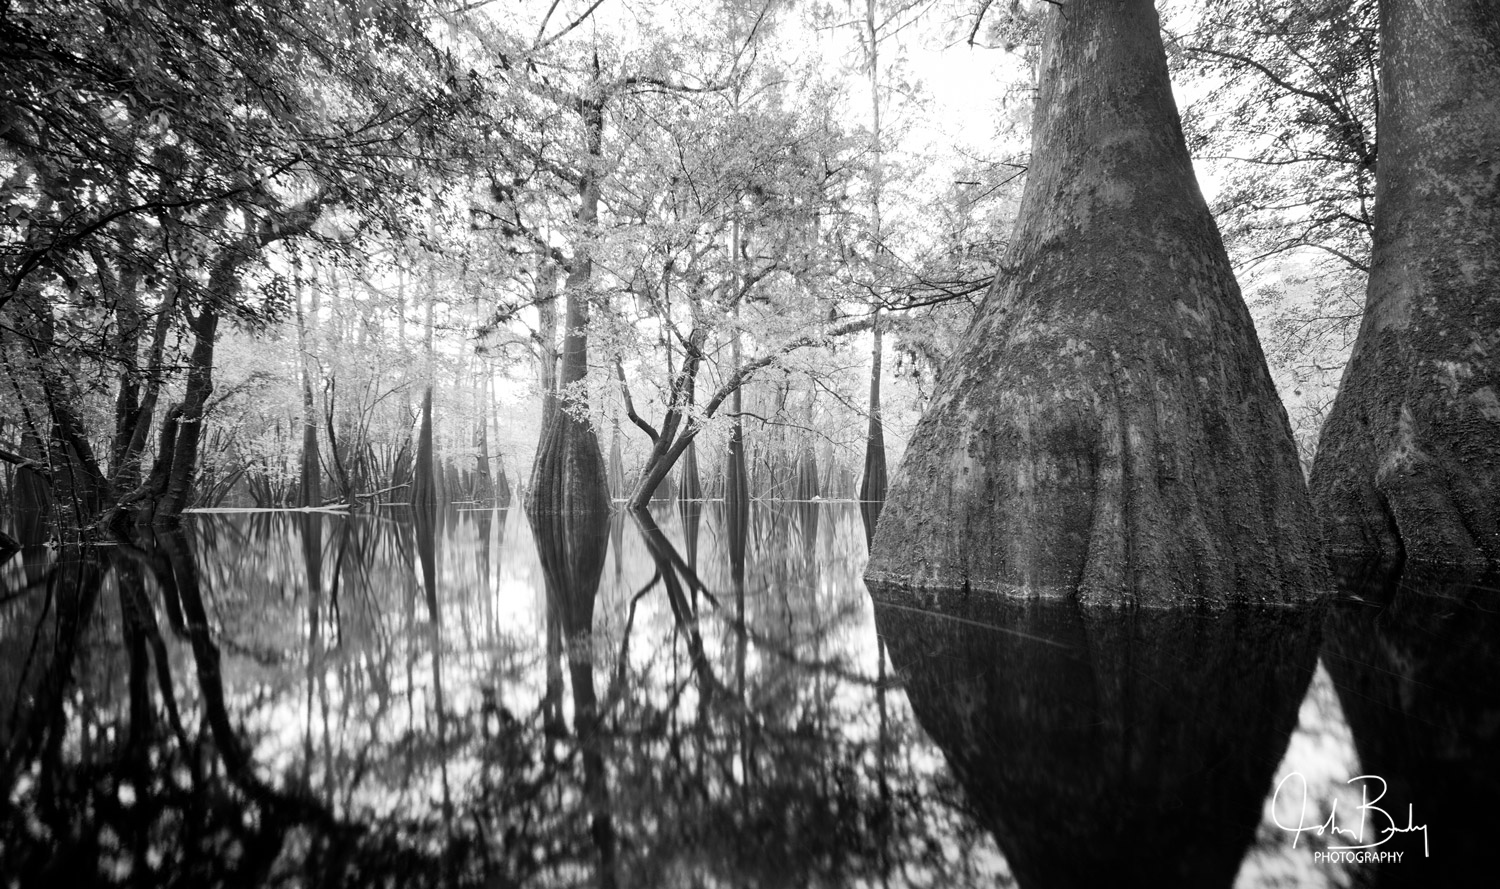 Florida, high springs district, ancient cypress, Suwannee, Santa Fe, large format film photography, wooden view camera, valley of the giants, photo